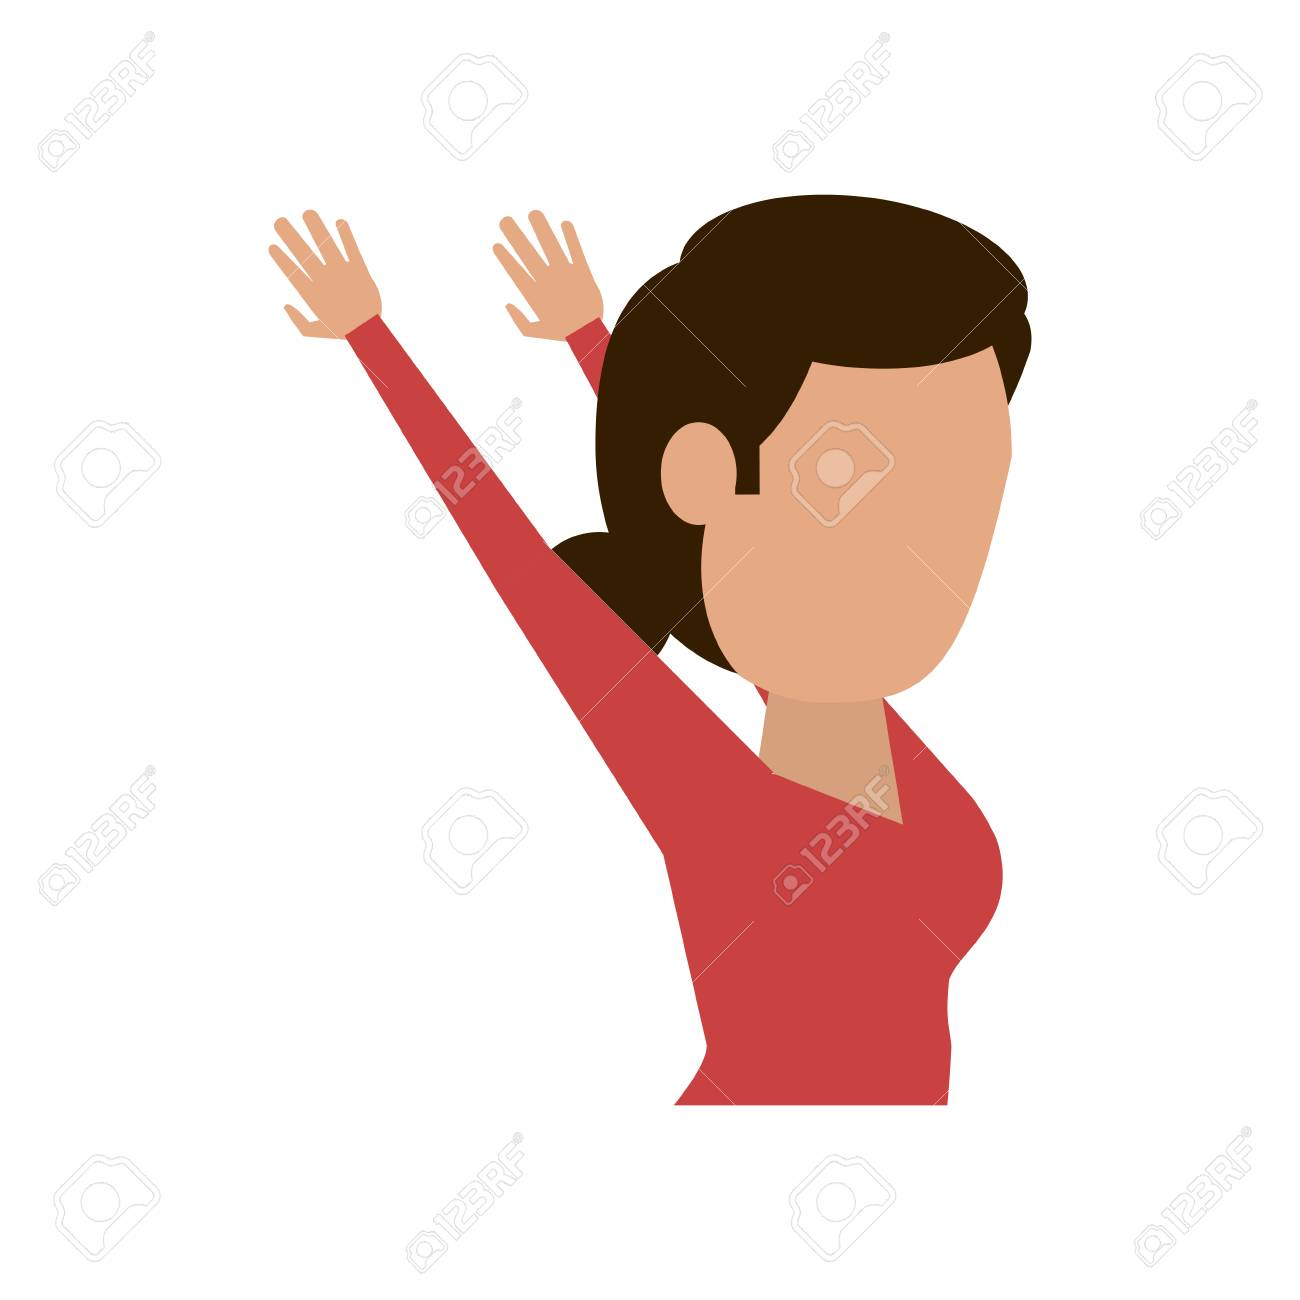 woman stretching arms fitness avatar icon image vector illustration